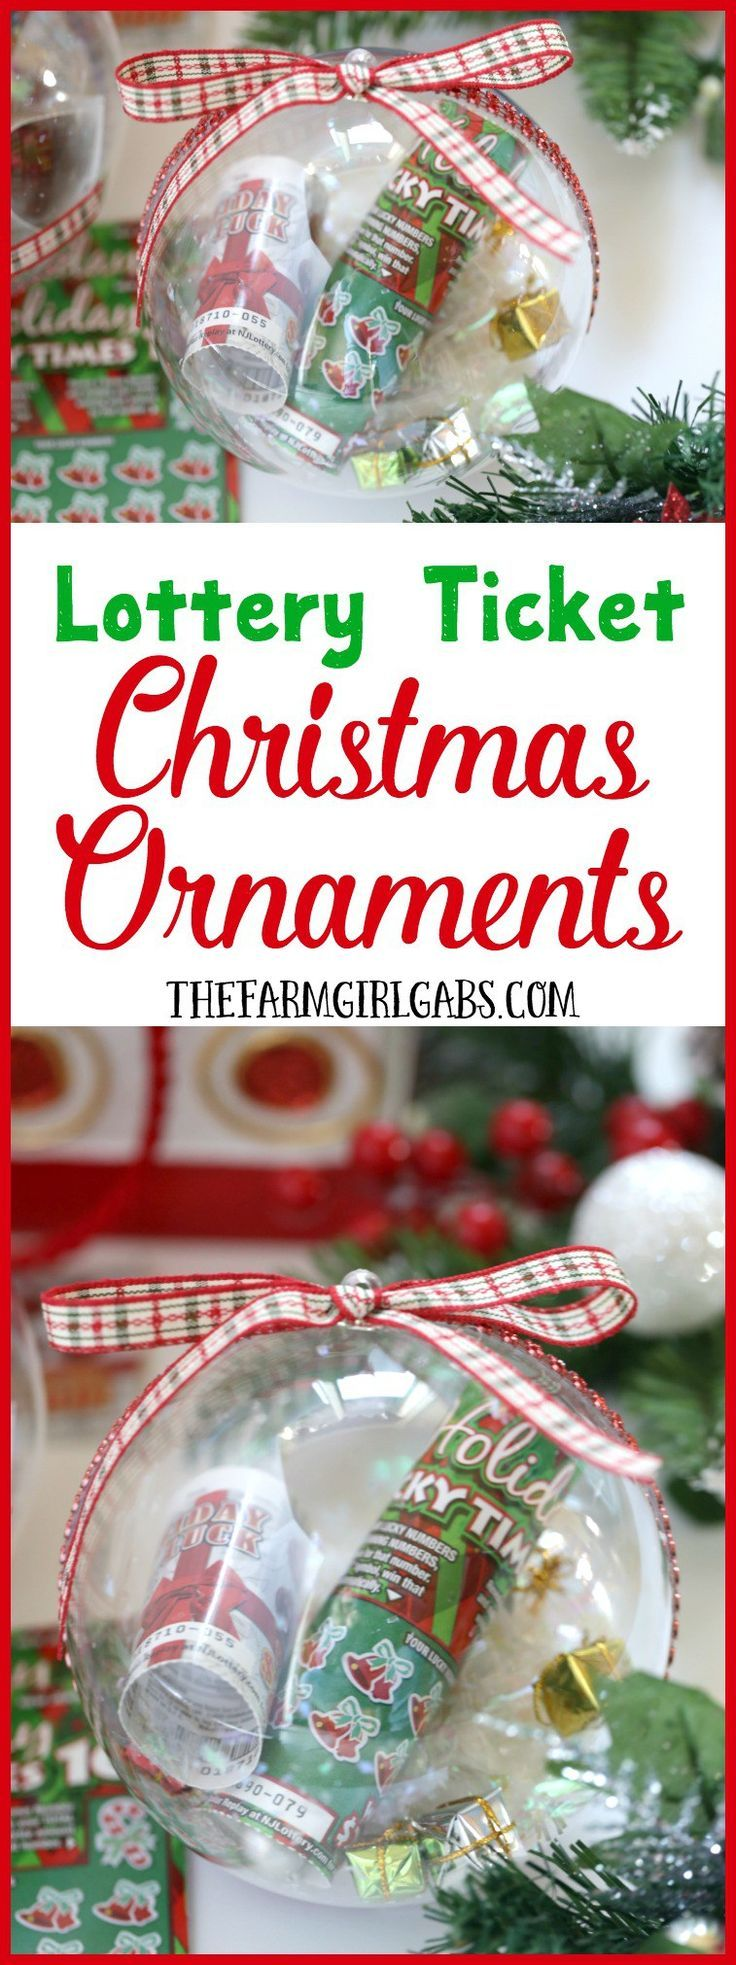 Gift the gift of lottery luck this holiday season with these fun New Jersey Lottery Ticket Christmas Ornaments. AD #NewJerseyLottery